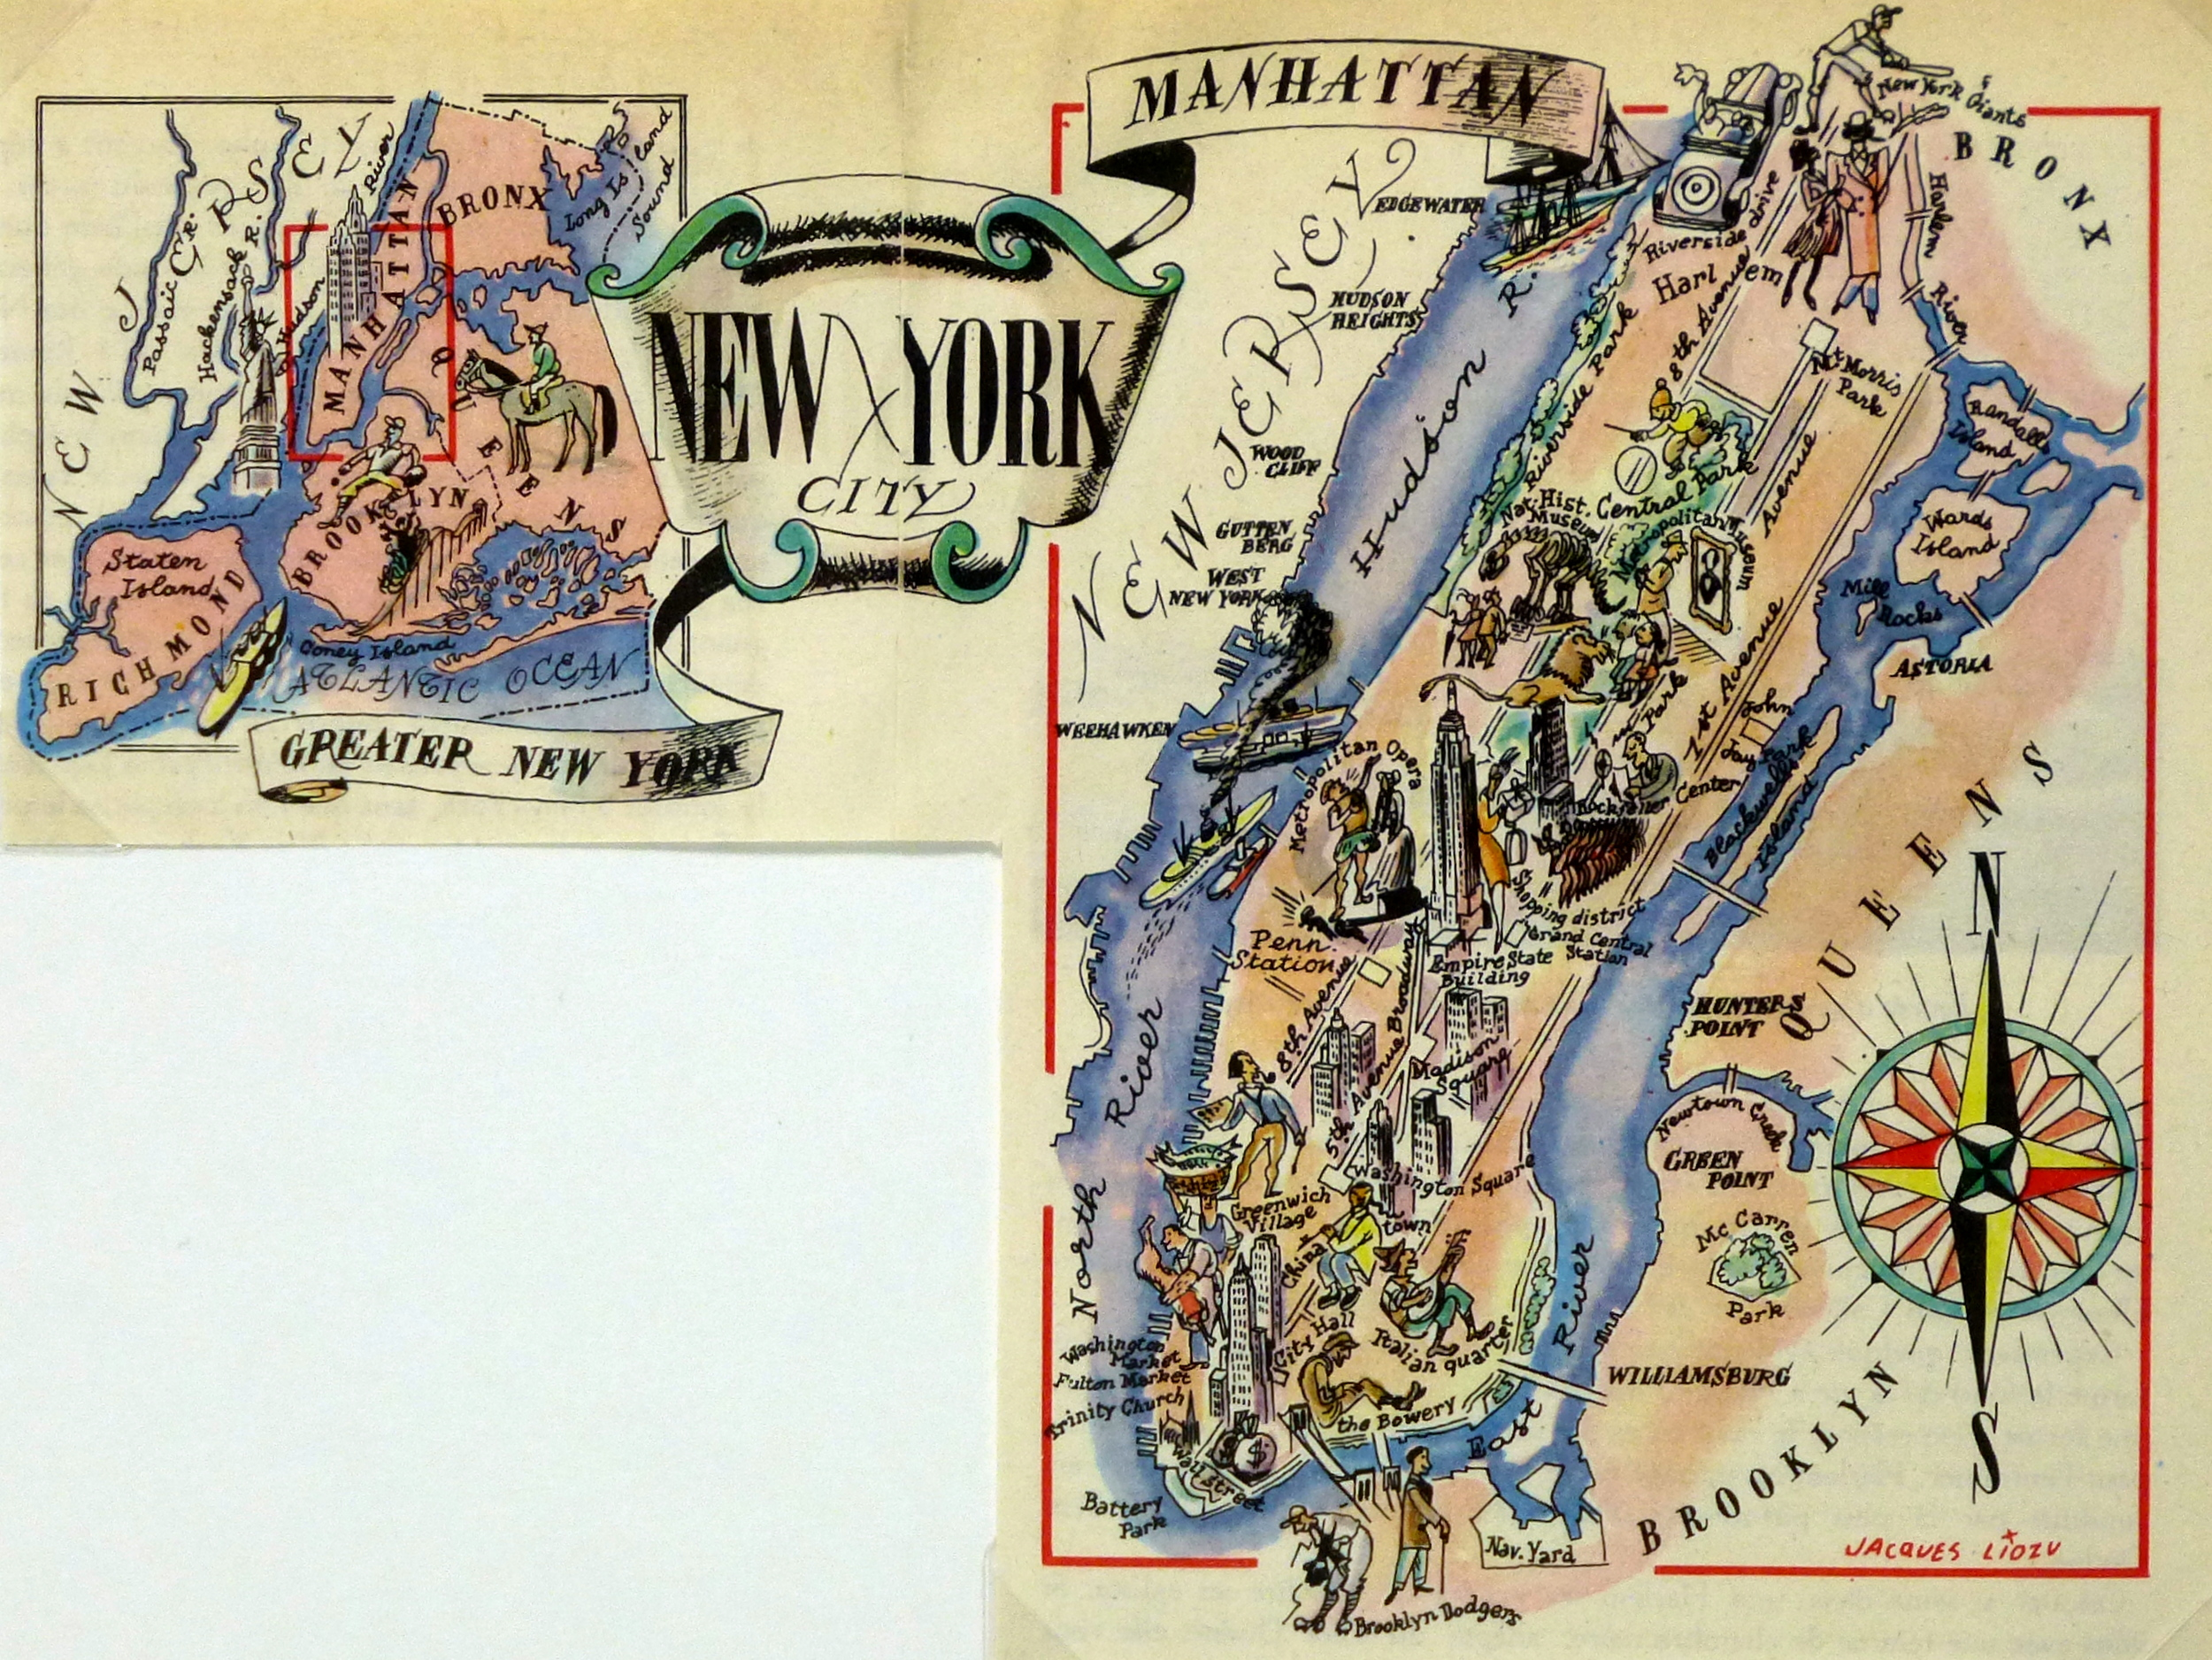 New York City Pictorial Map, 1946-main-6265K